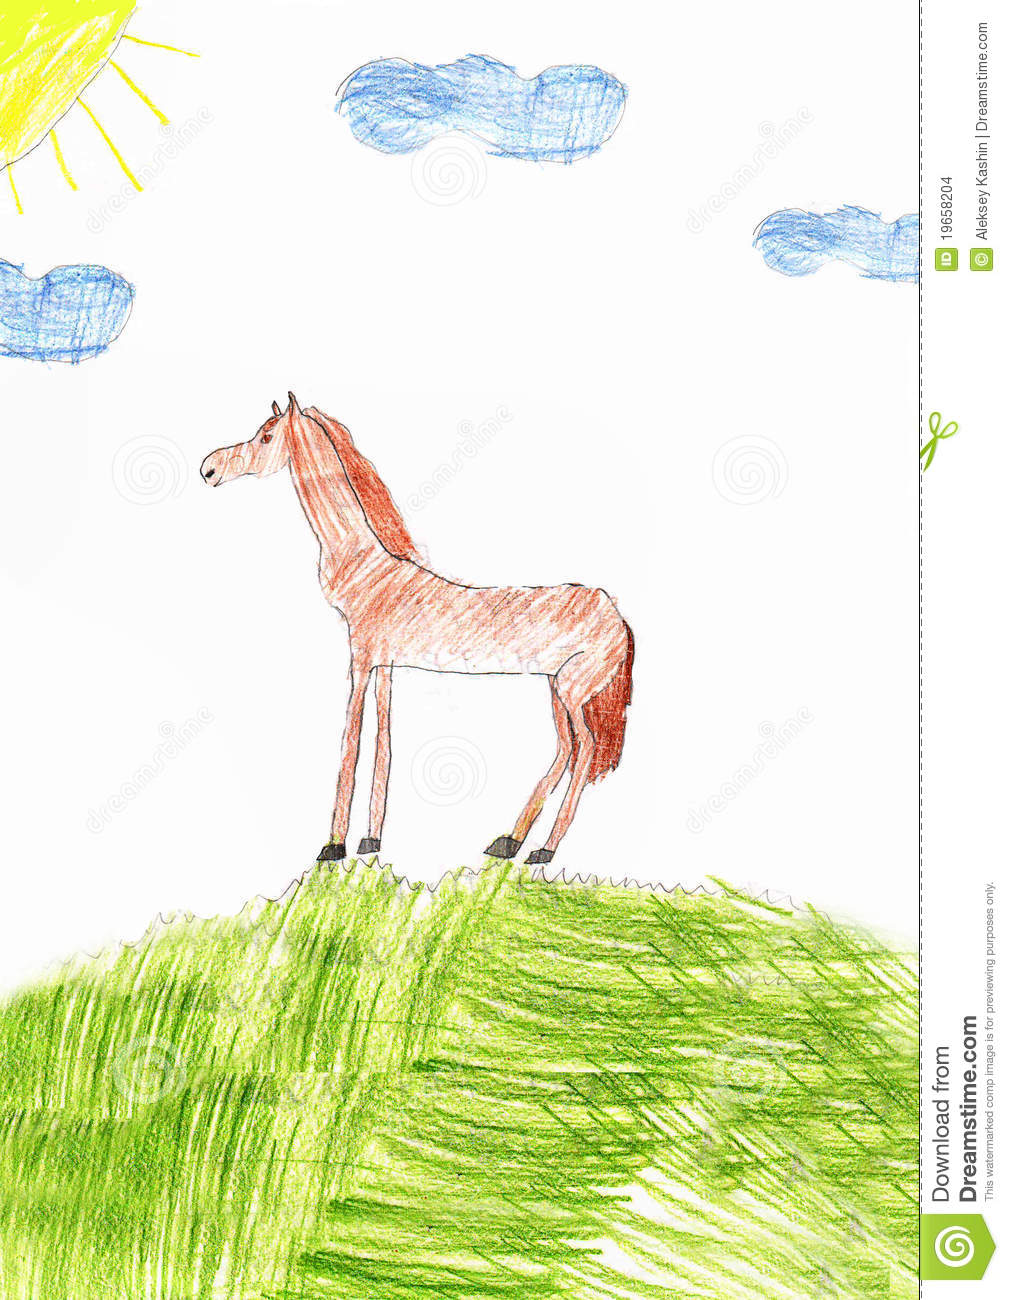 Children S Drawing Of A Horse Stock Illustration Illustration Of Outdoors Landscape 19658204